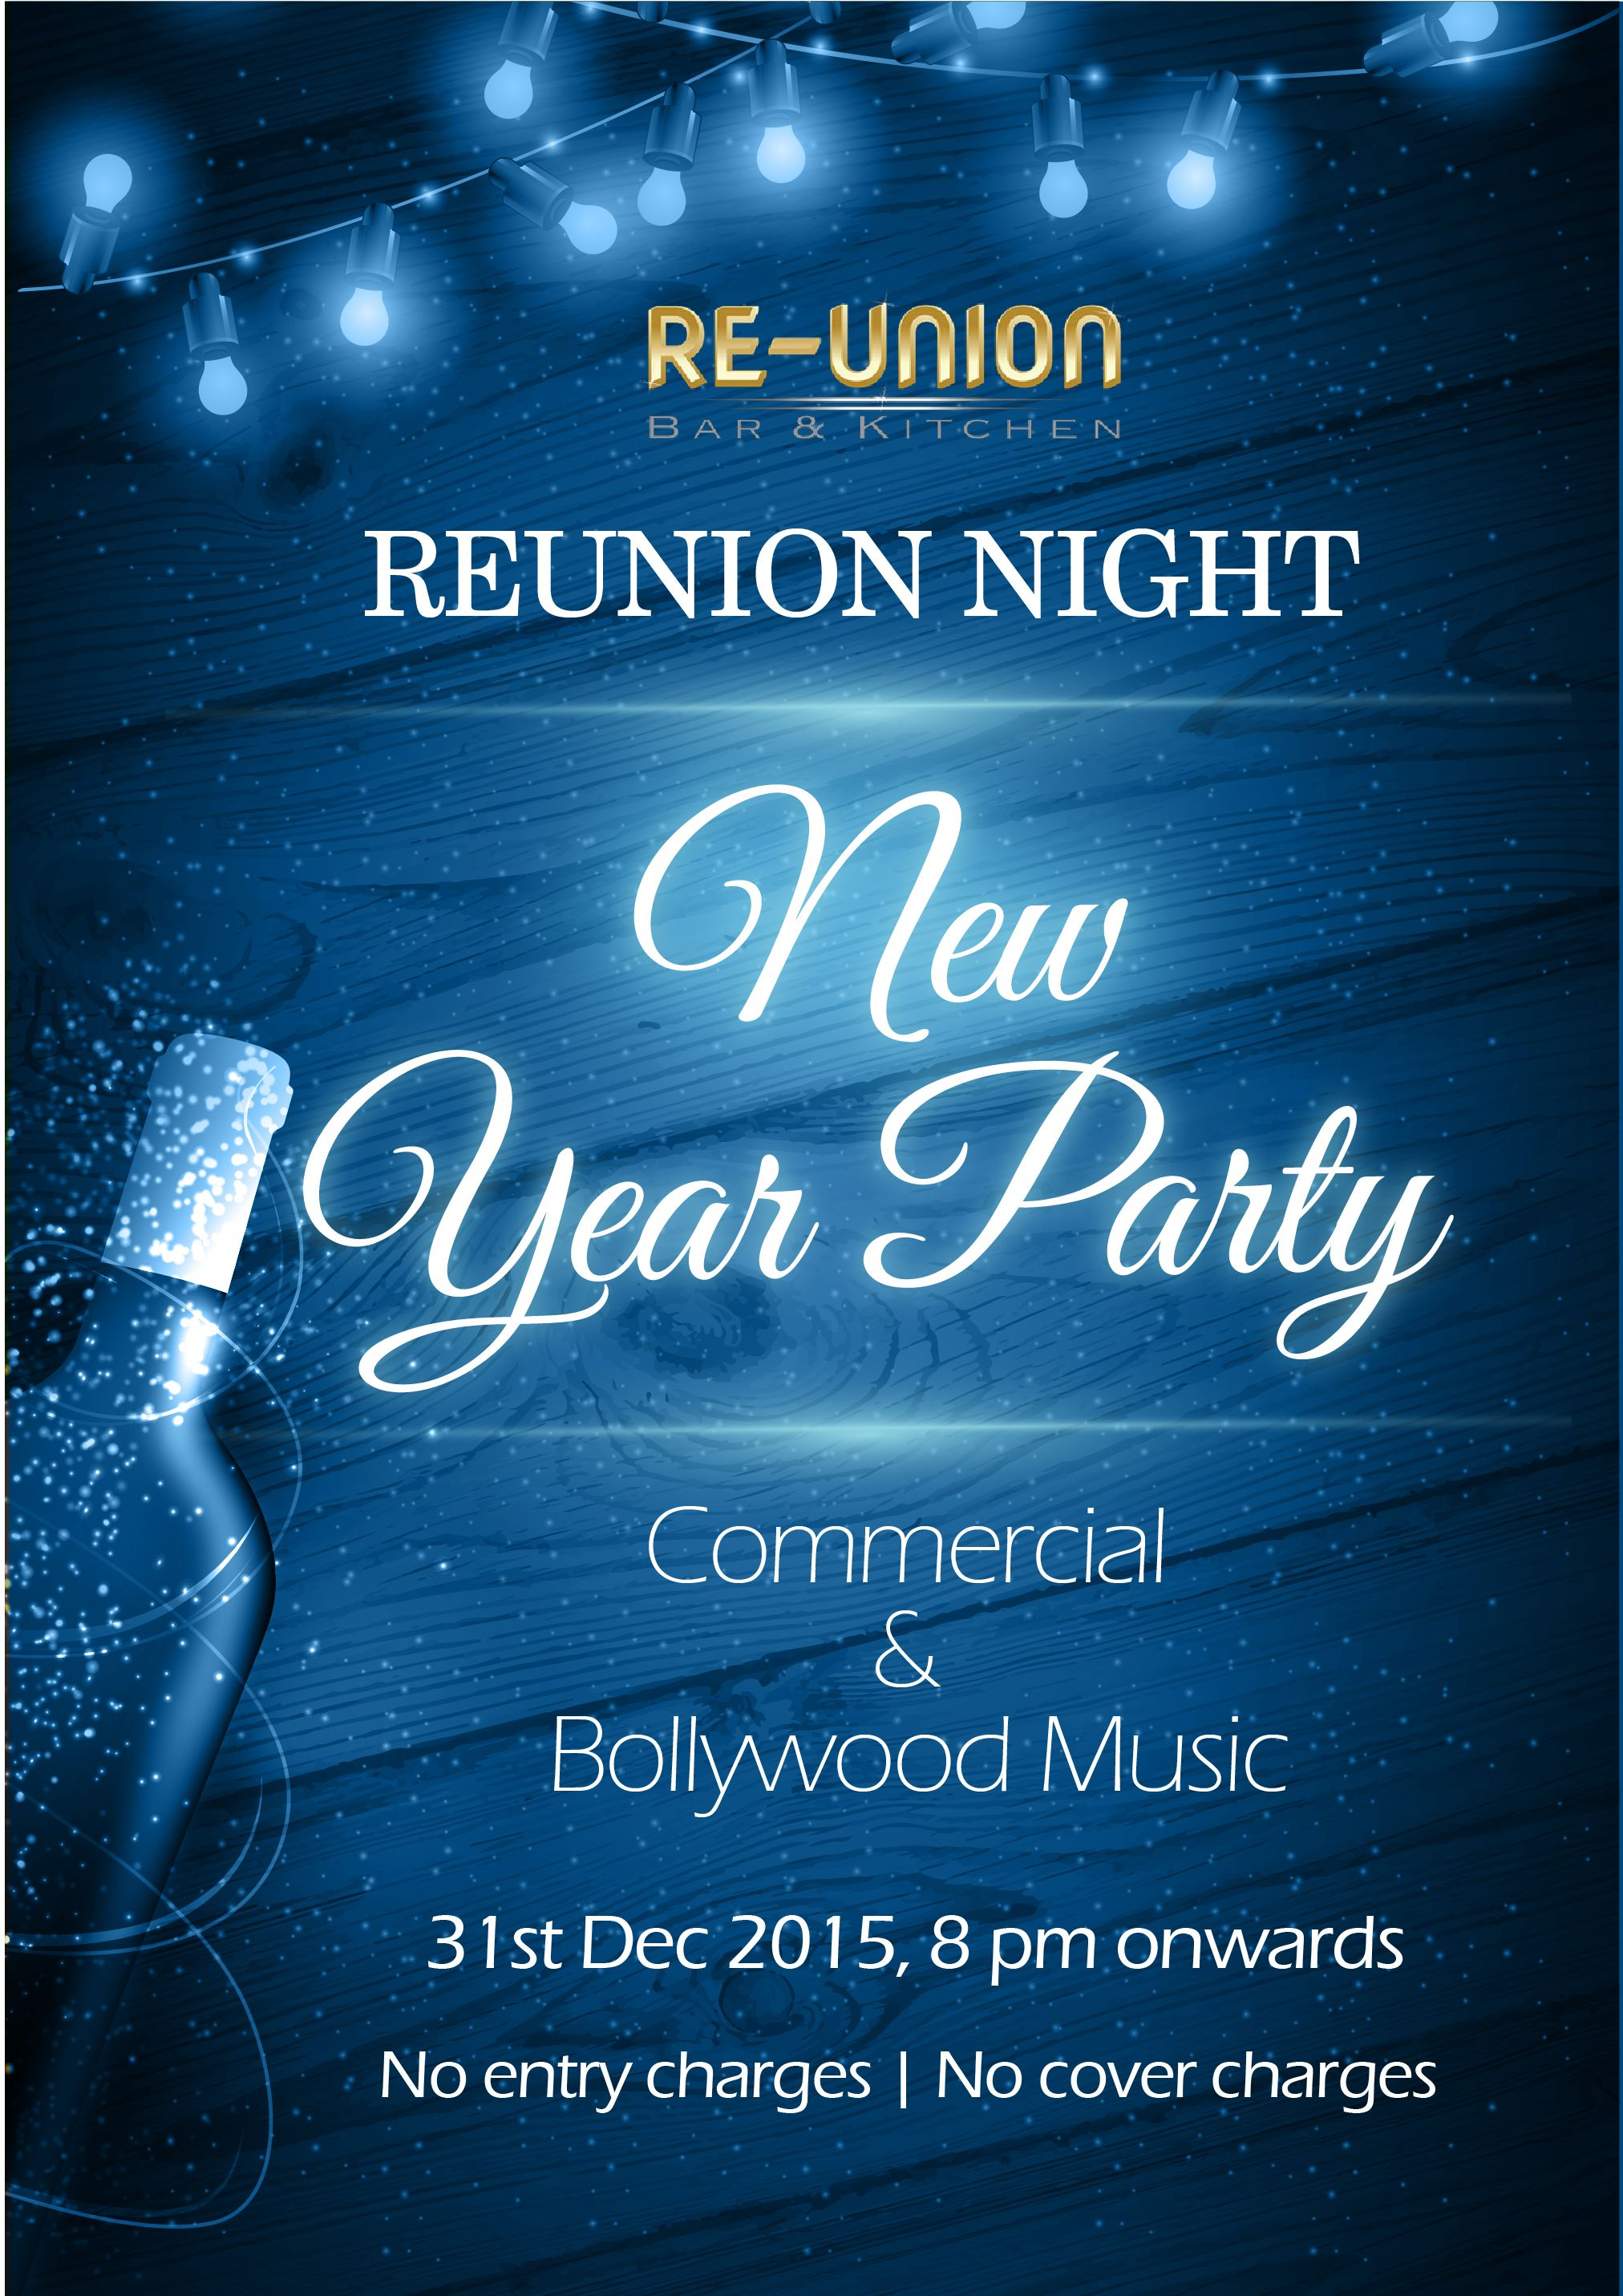 Enjoy the last day of the year to the fullest at The Reunion Bar ...